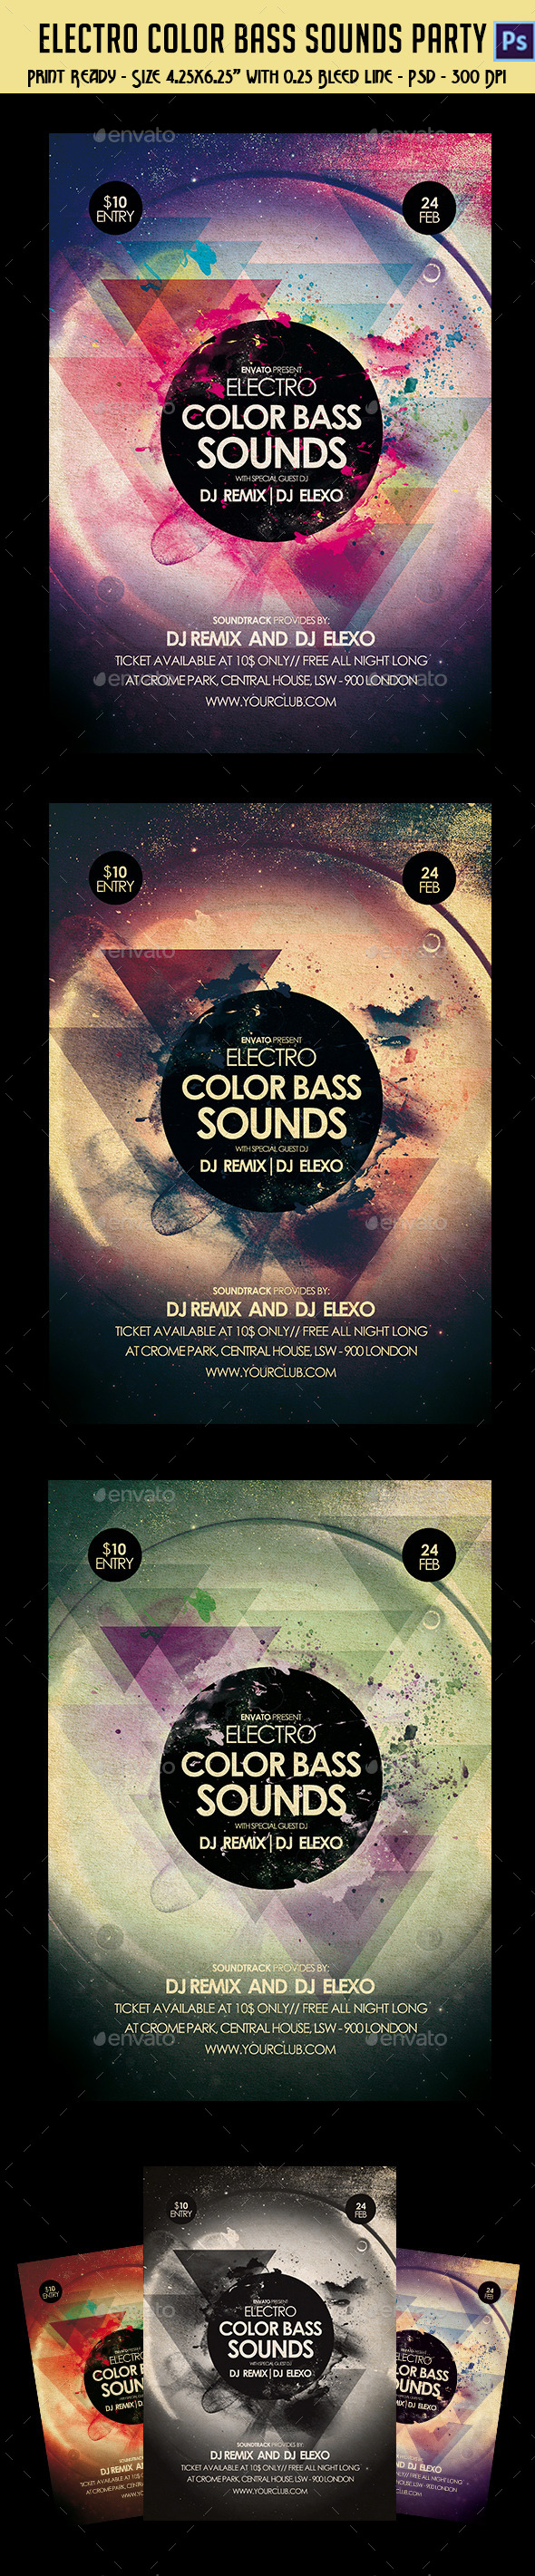 Electronic Color Bass Sounds Party Flyer - Clubs & Parties Events